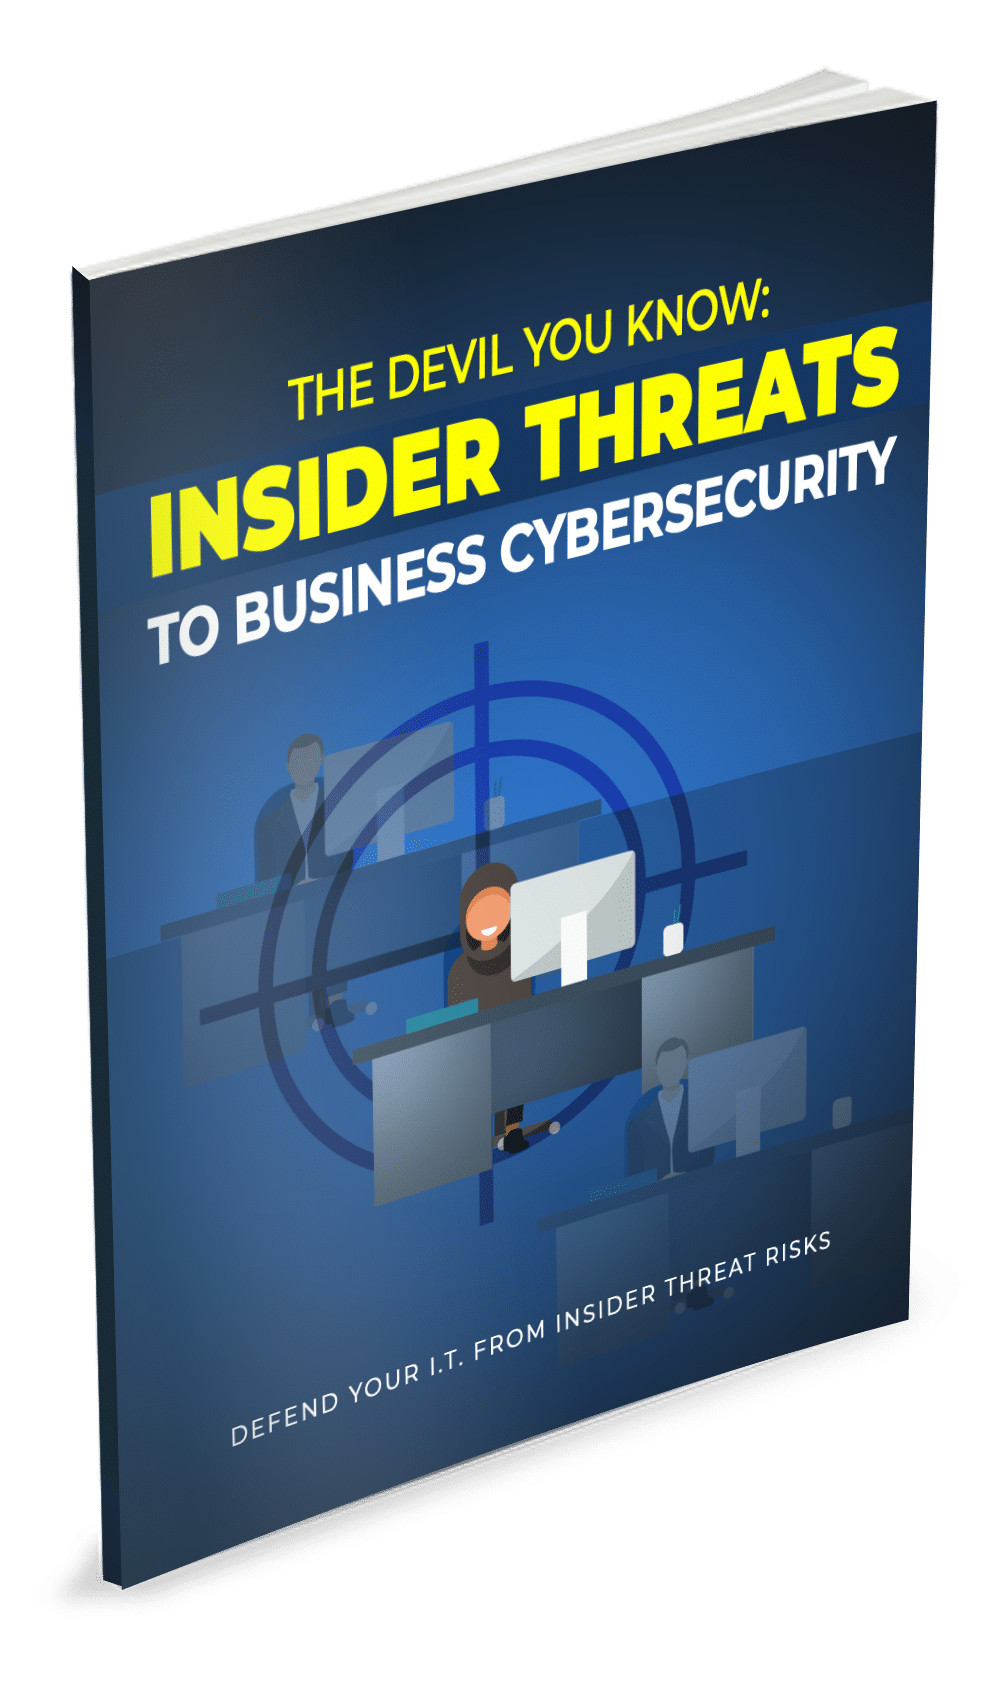 The Devil You Know: Insider Threats to Business Cybersecurity